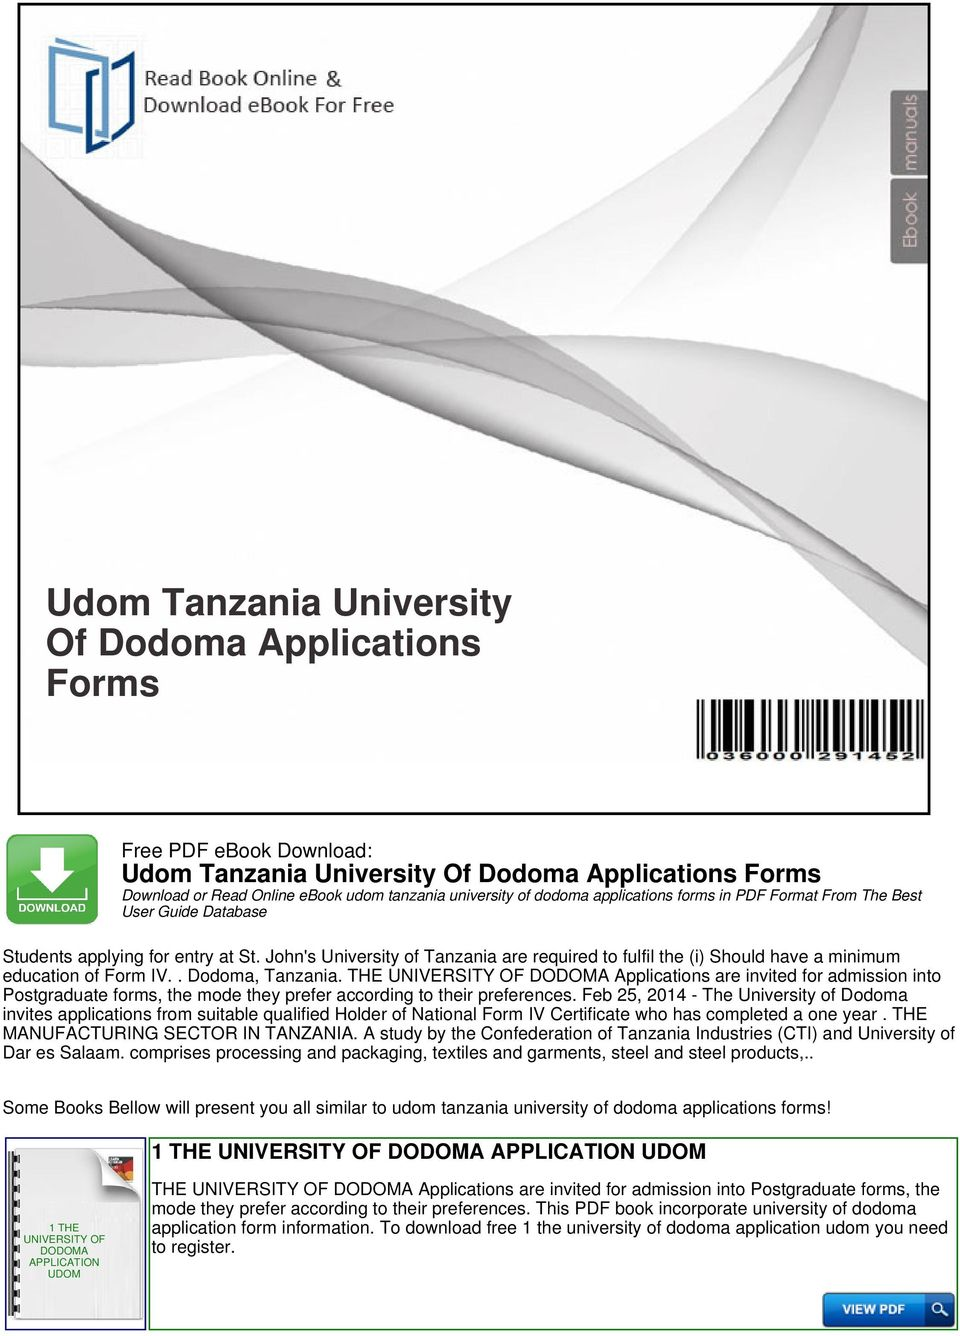 udom tanzania university of dodoma applications forms pdf